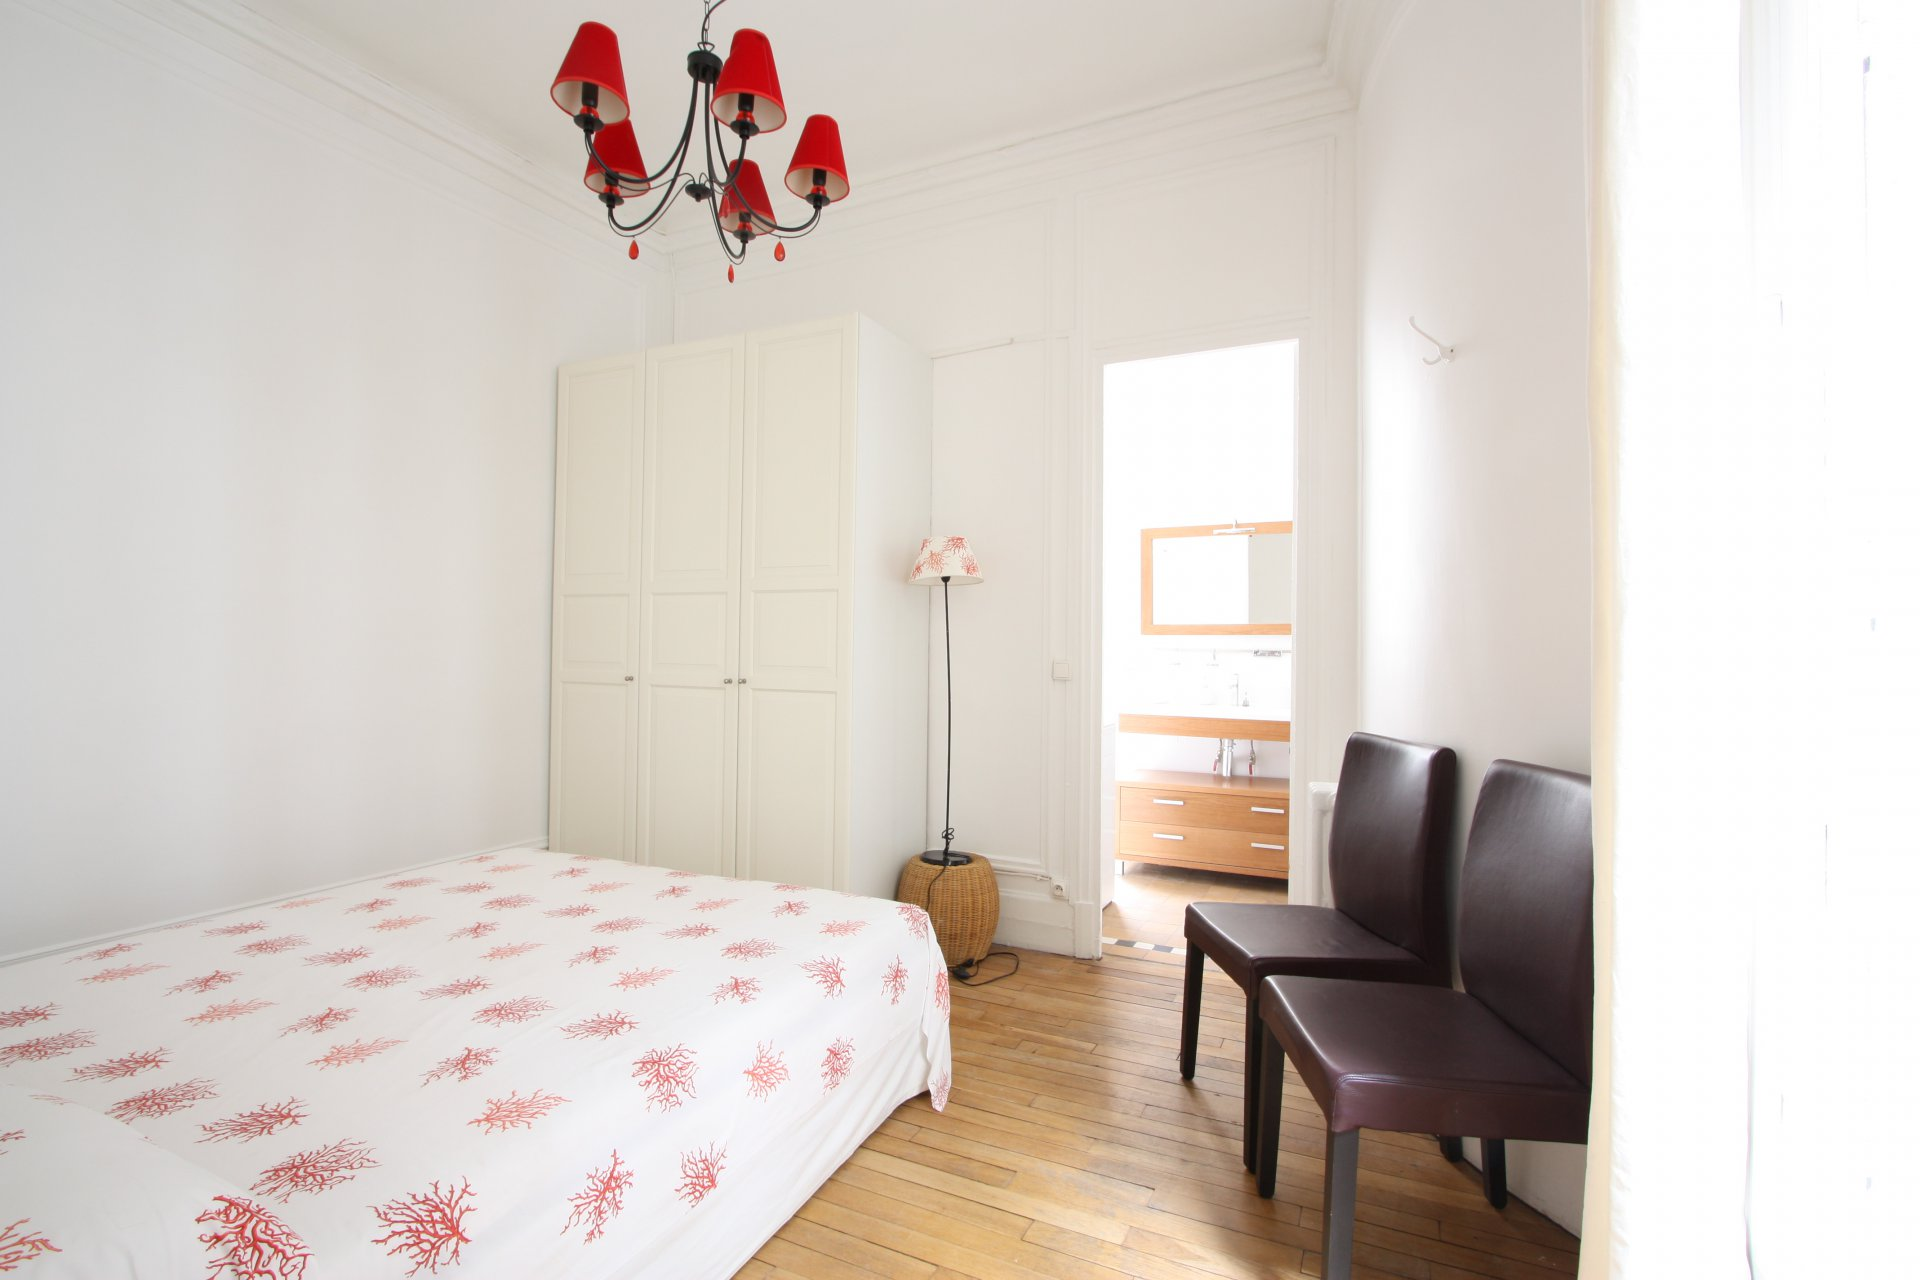 Annonce location appartement paris 8 me champs lys es for Location appartement atypique paris